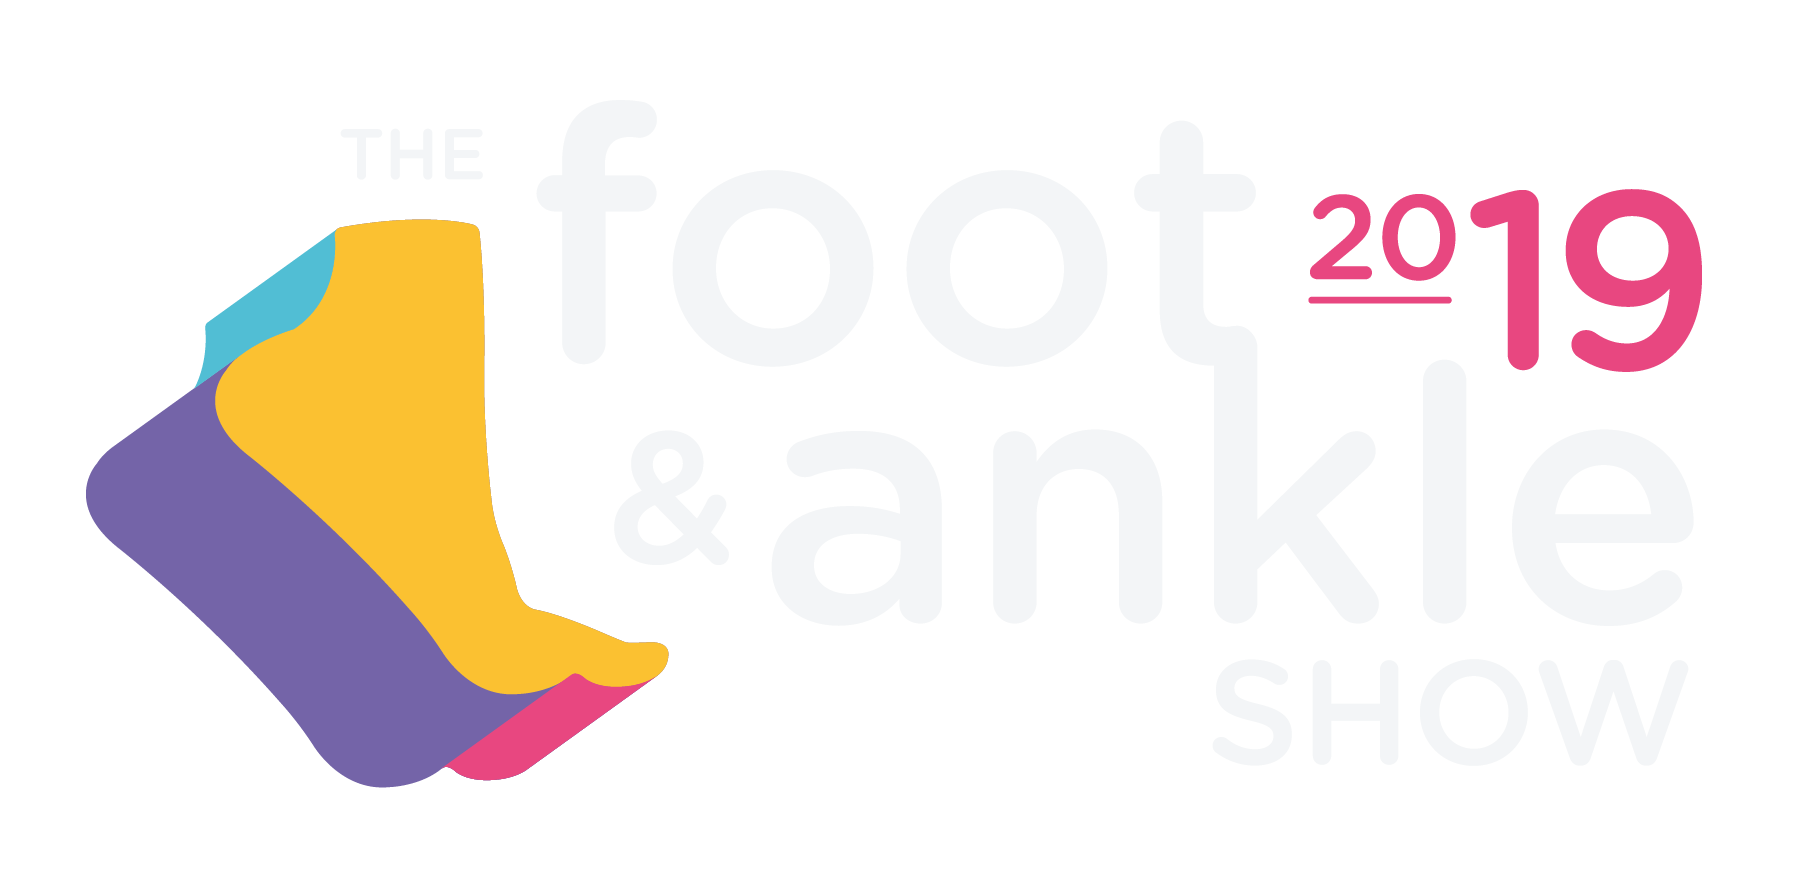 The Foot & Ankle Show